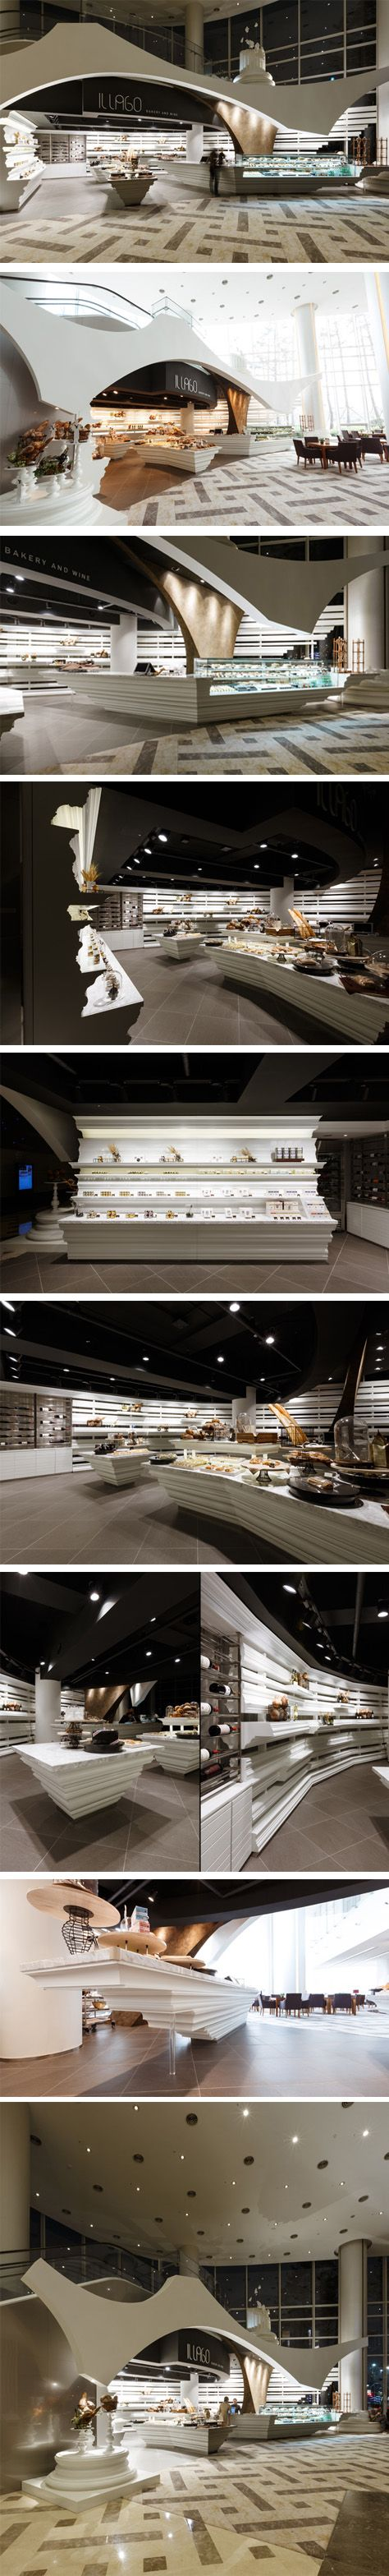 IL LAGO Bakery & Wine shop by Design BONO, Goyang City – South.